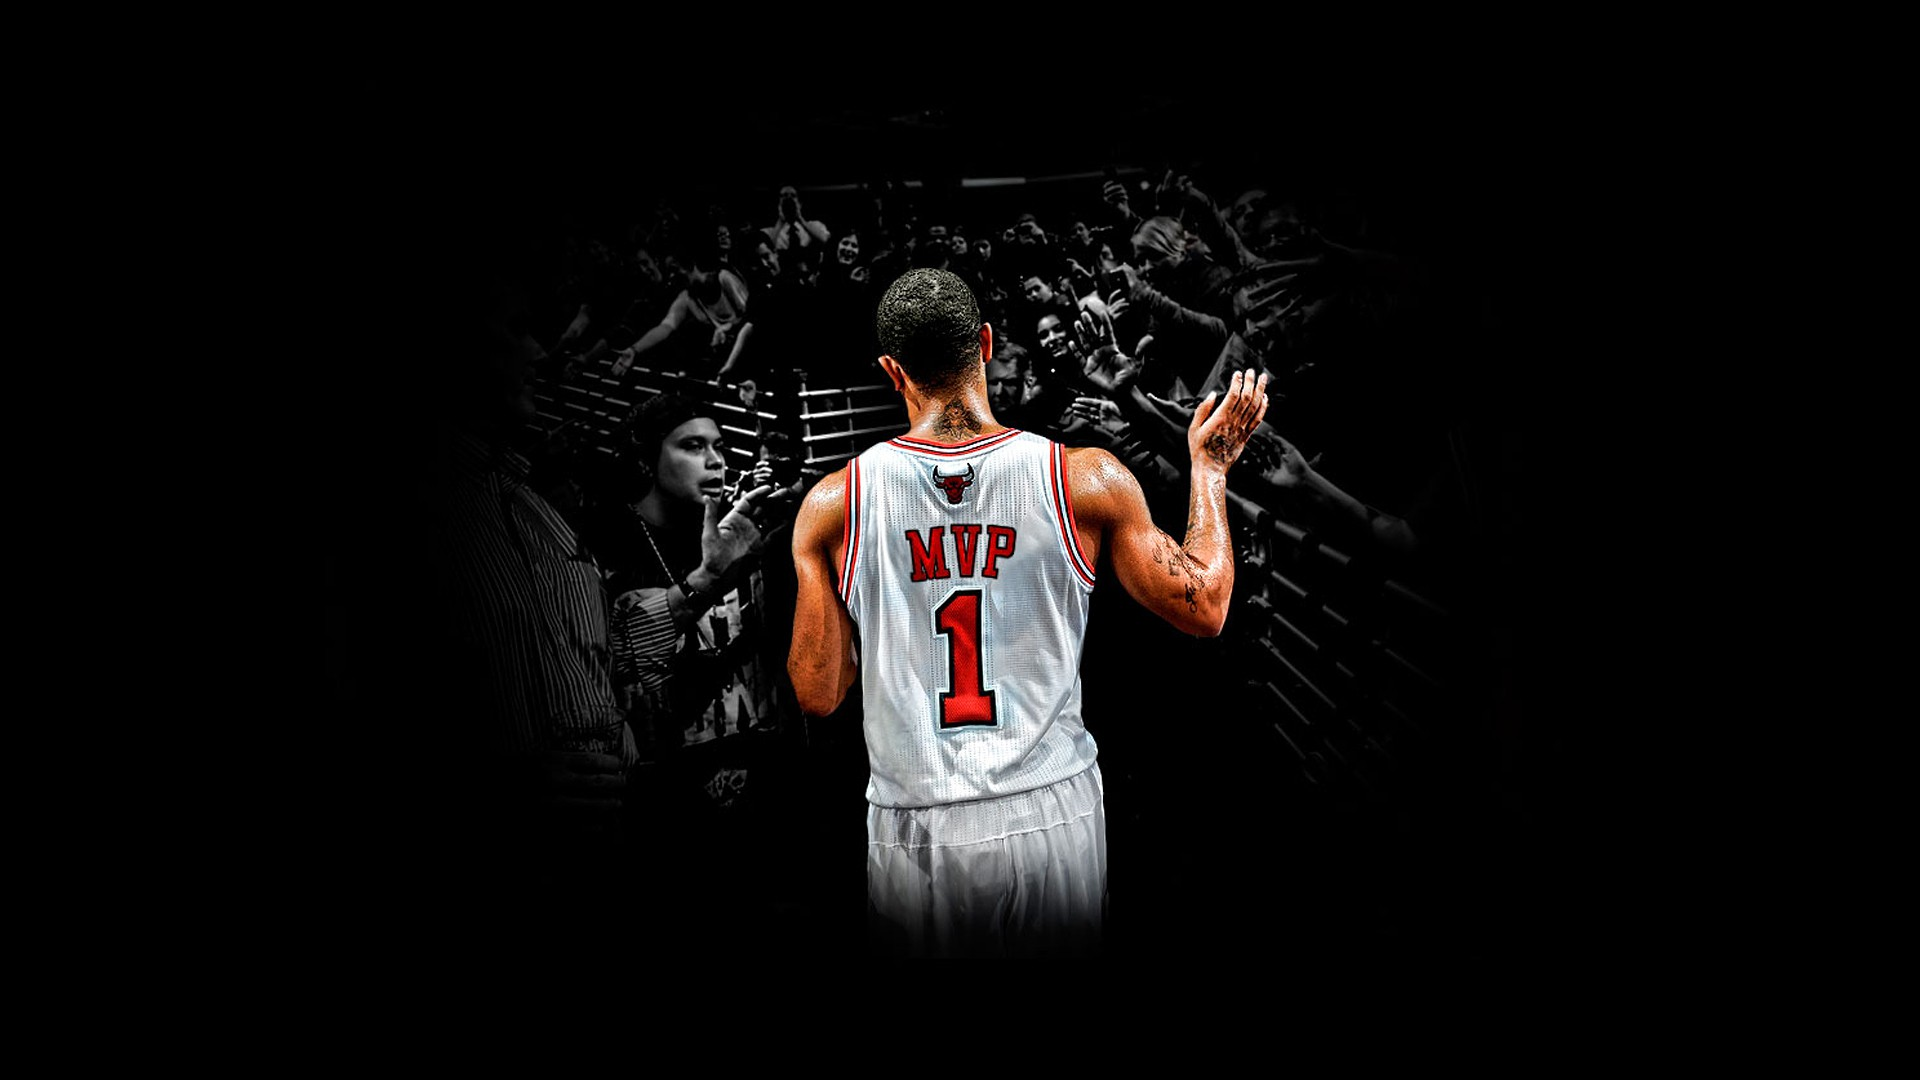 Chicago Sports Wallpaper Iphone 6s: Chicago Sports Wallpapers (33 Wallpapers)